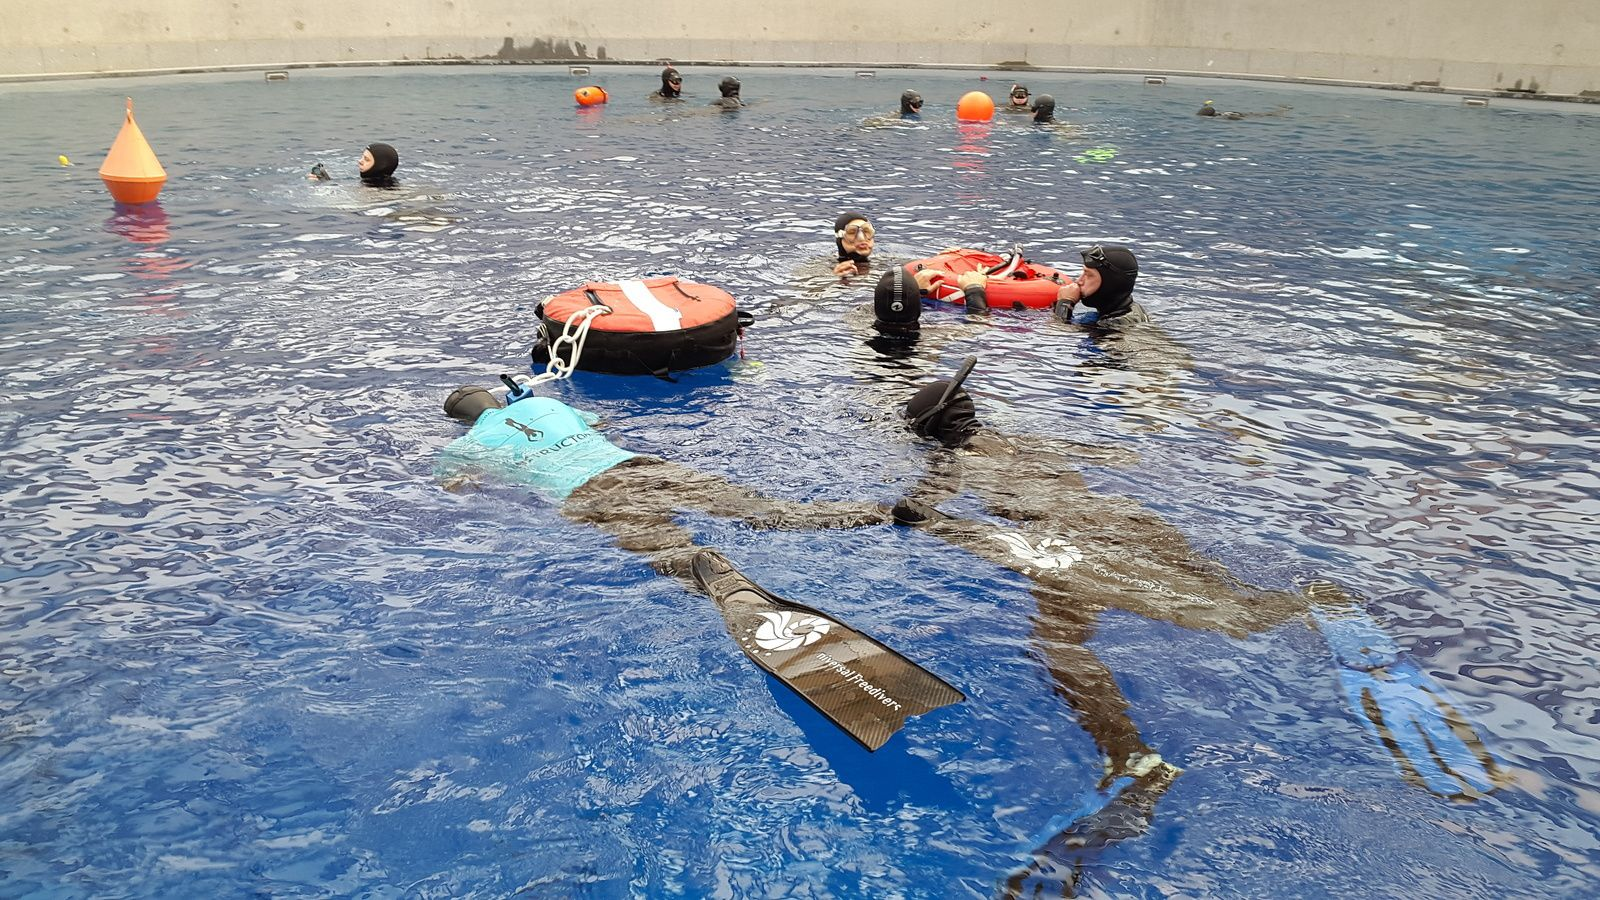 Duiktank Transfo, the perfect place for freediving introductory course!